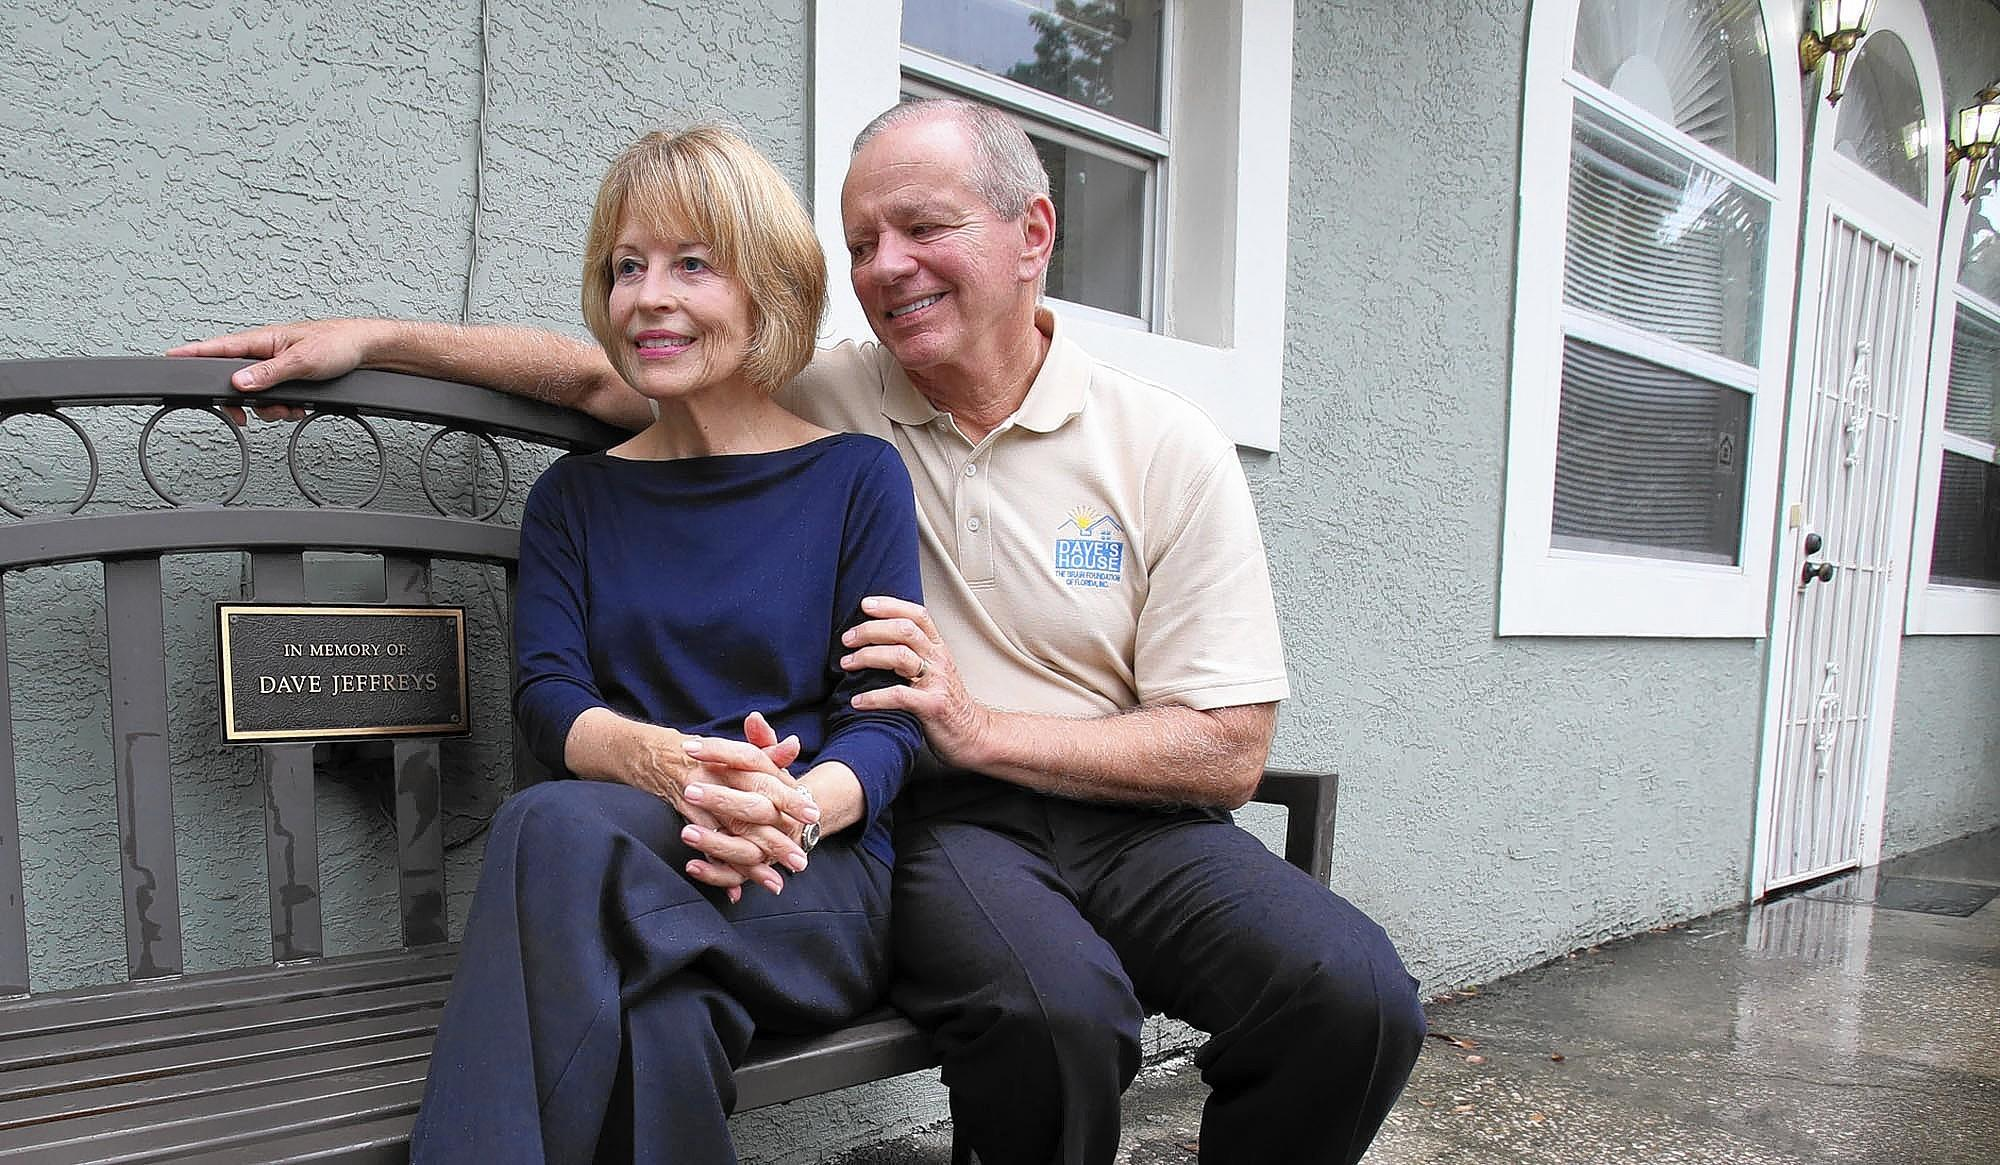 Lin and Ron Wilensky, co-founders of Dave's House, sit on a bench in memory of Lin's brother, who suffered from schizophrenia.